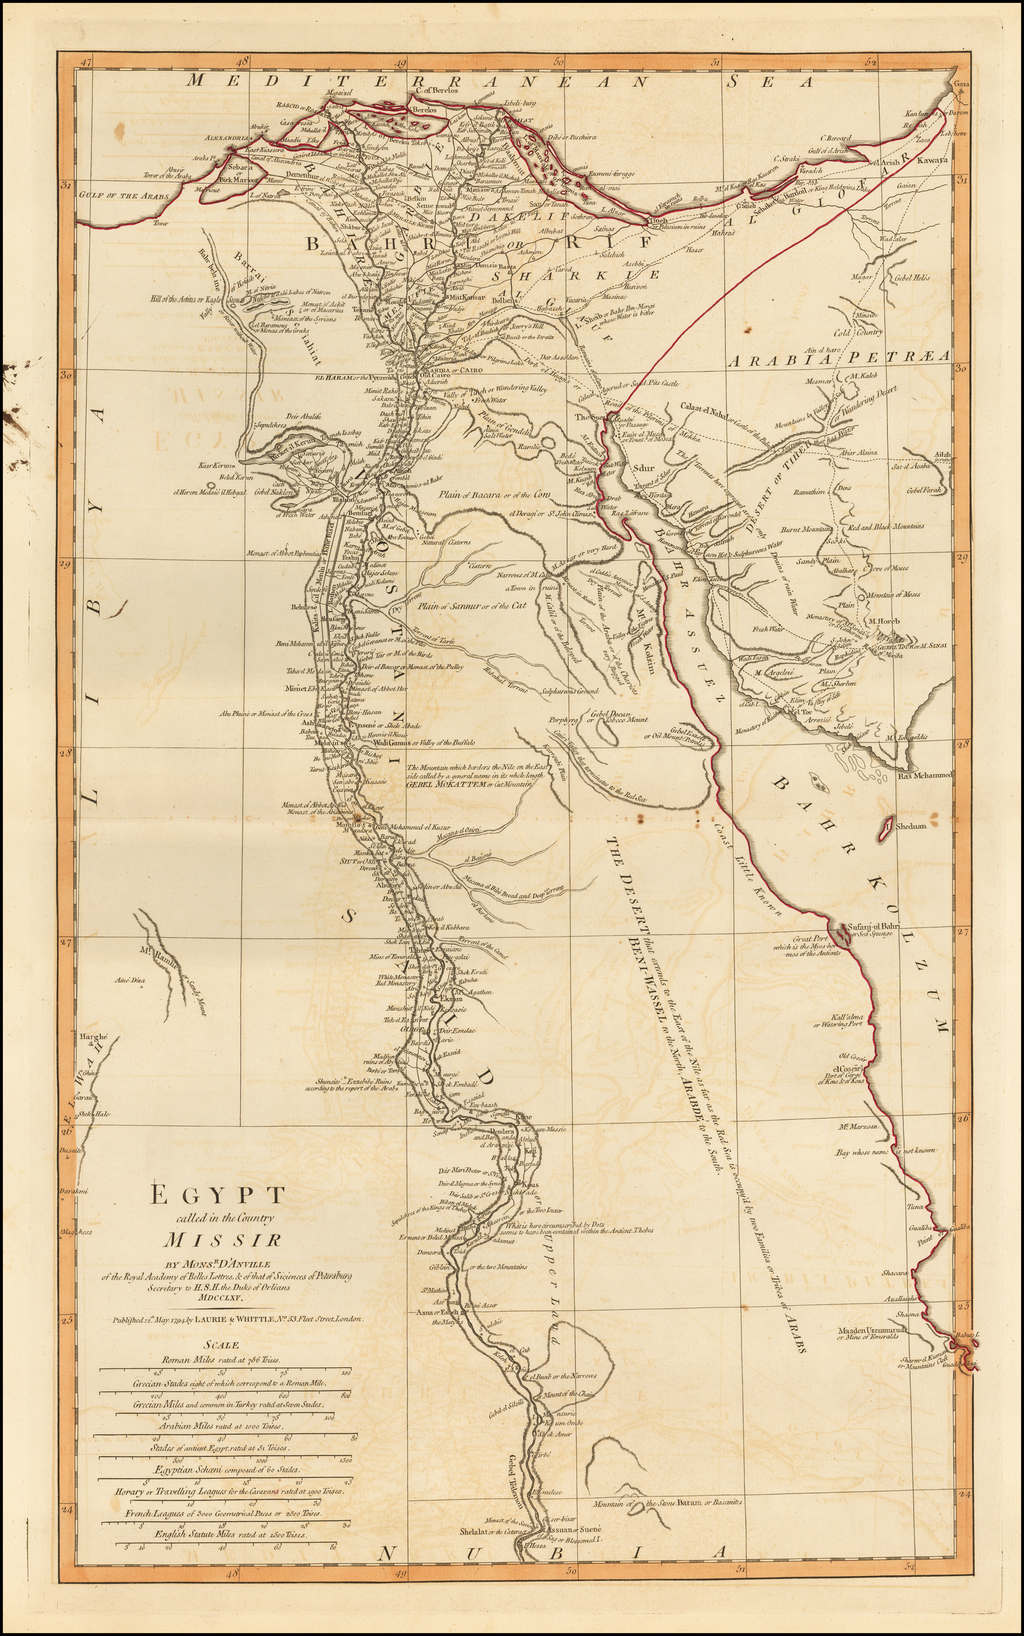 Egypt called in the Country Missir by Monsr. D'Anville of the Royal Academy of Belles Lettres, & of that of Siciences [sic] of Petersburg Secretary to H.S.H. the Duke of Orleans. MDCCLXV. By Laurie & Whittle